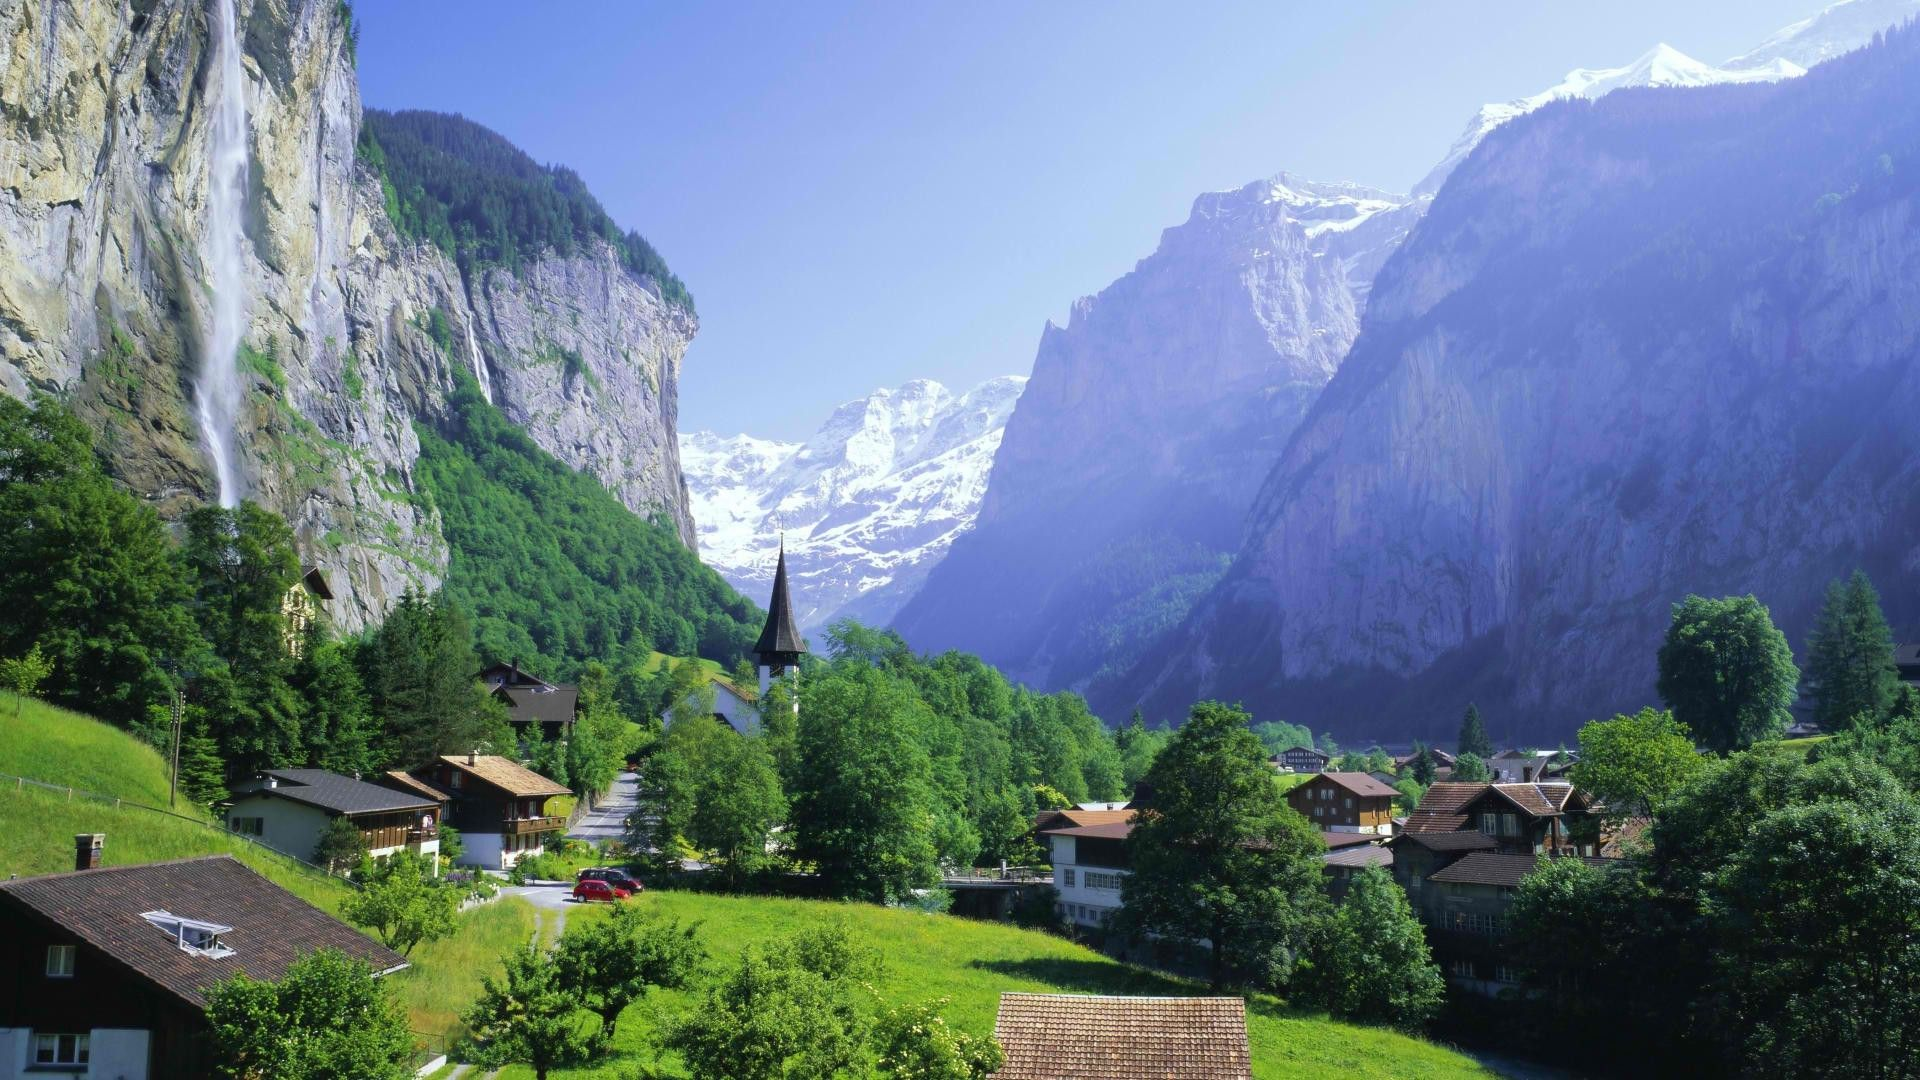 The Nature Of The Swiss Alps